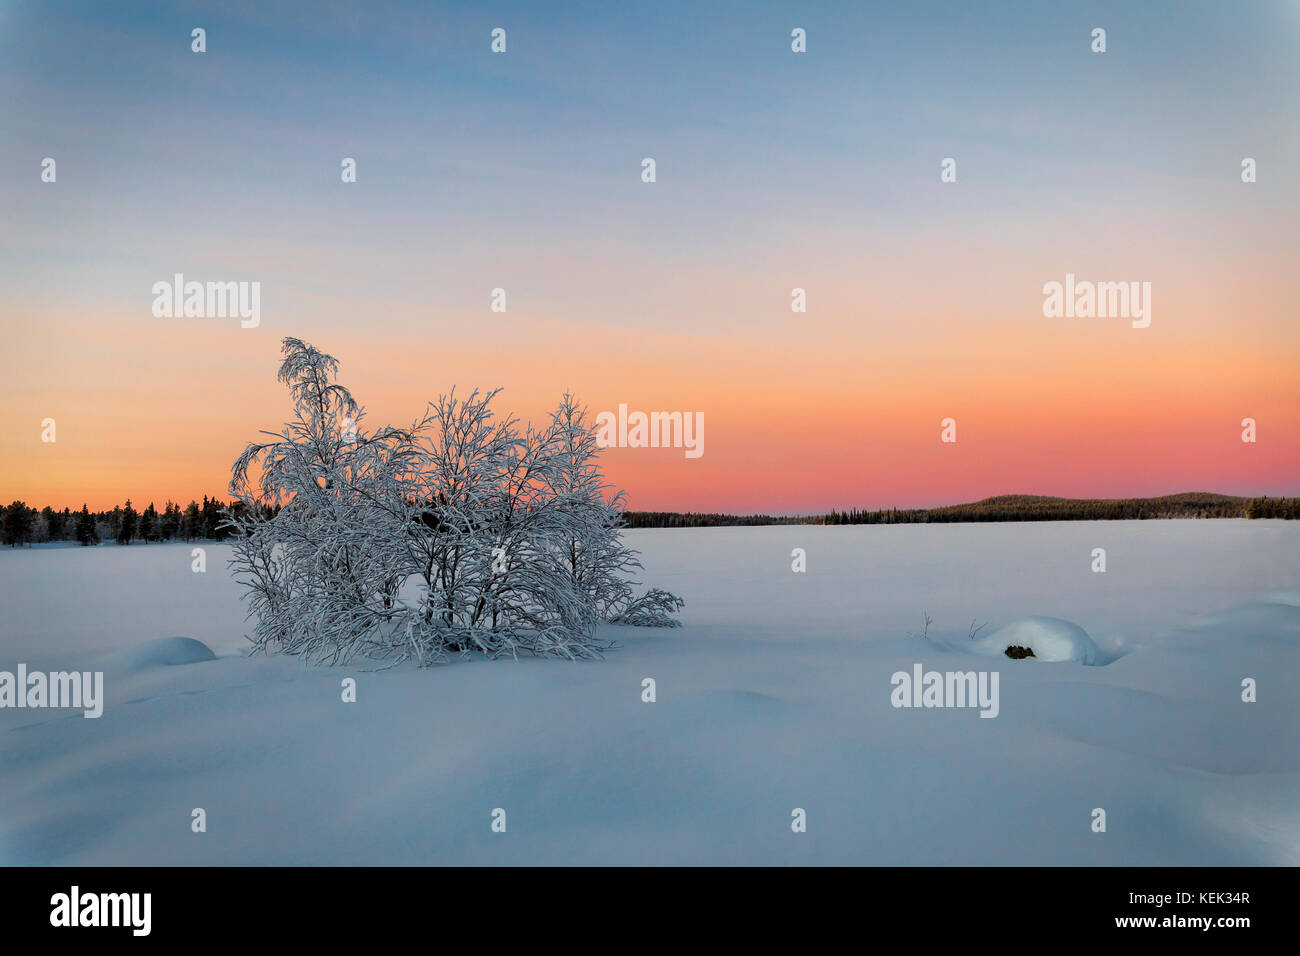 Bush on the frozen lake at sunset in Finland - Stock Image